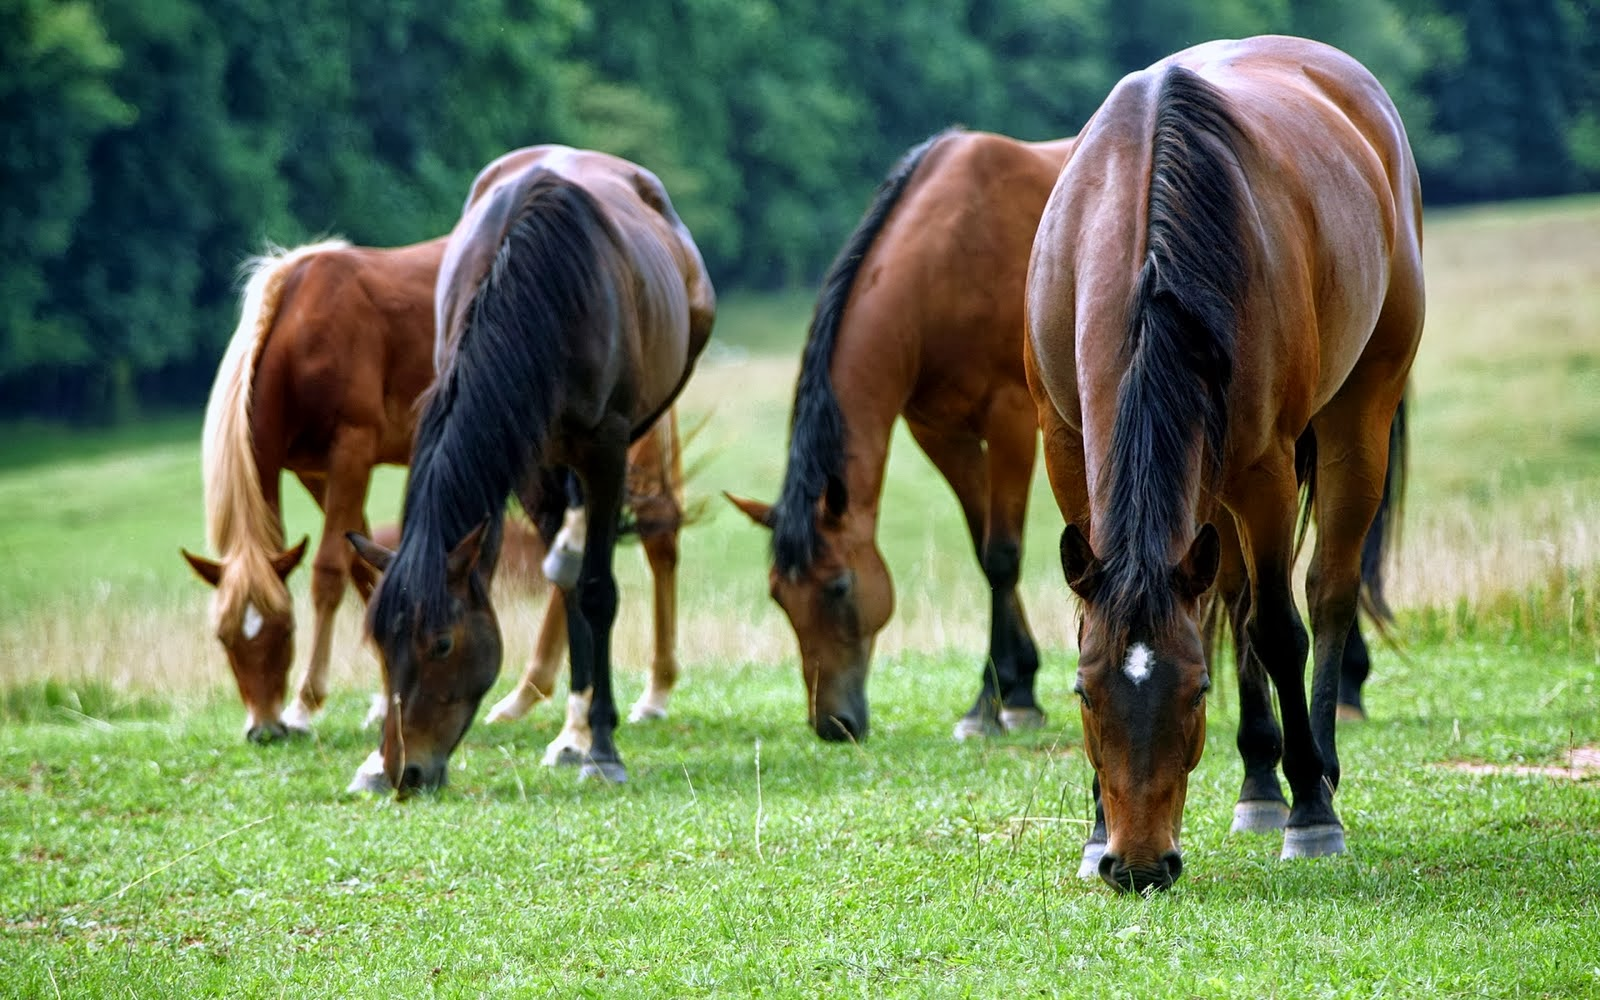 HORSES HD WALLPAPERS | FREE HD WALLPAPERS